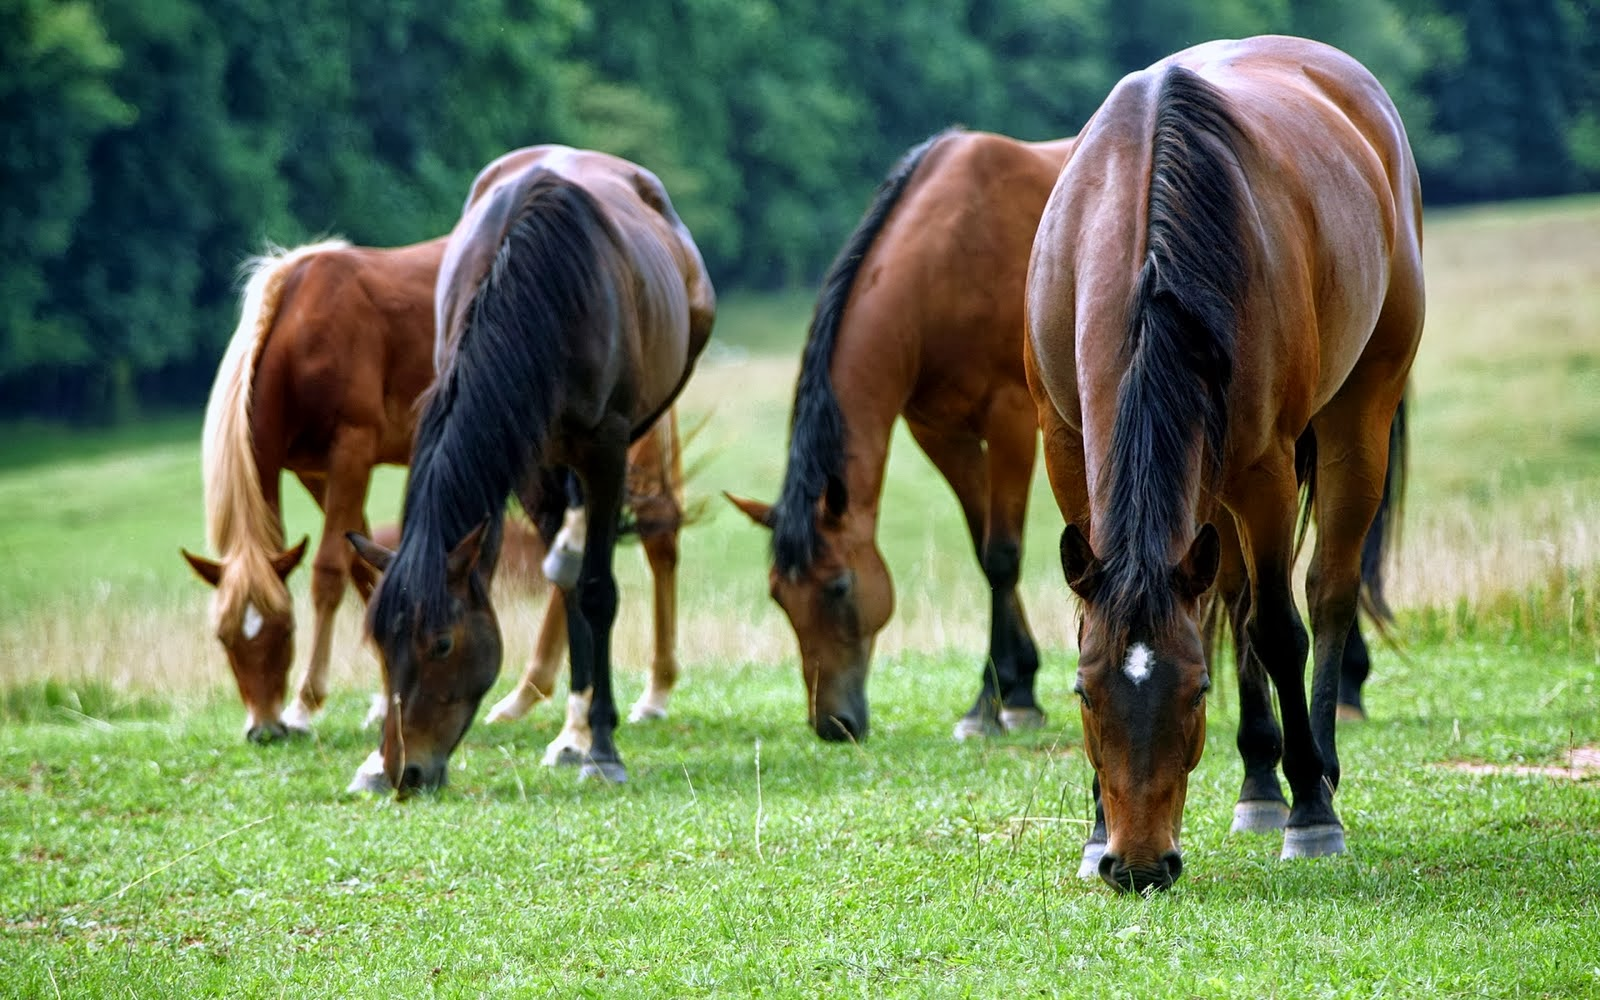 HORSES HD WALLPAPERS | FREE HD WALLPAPERS